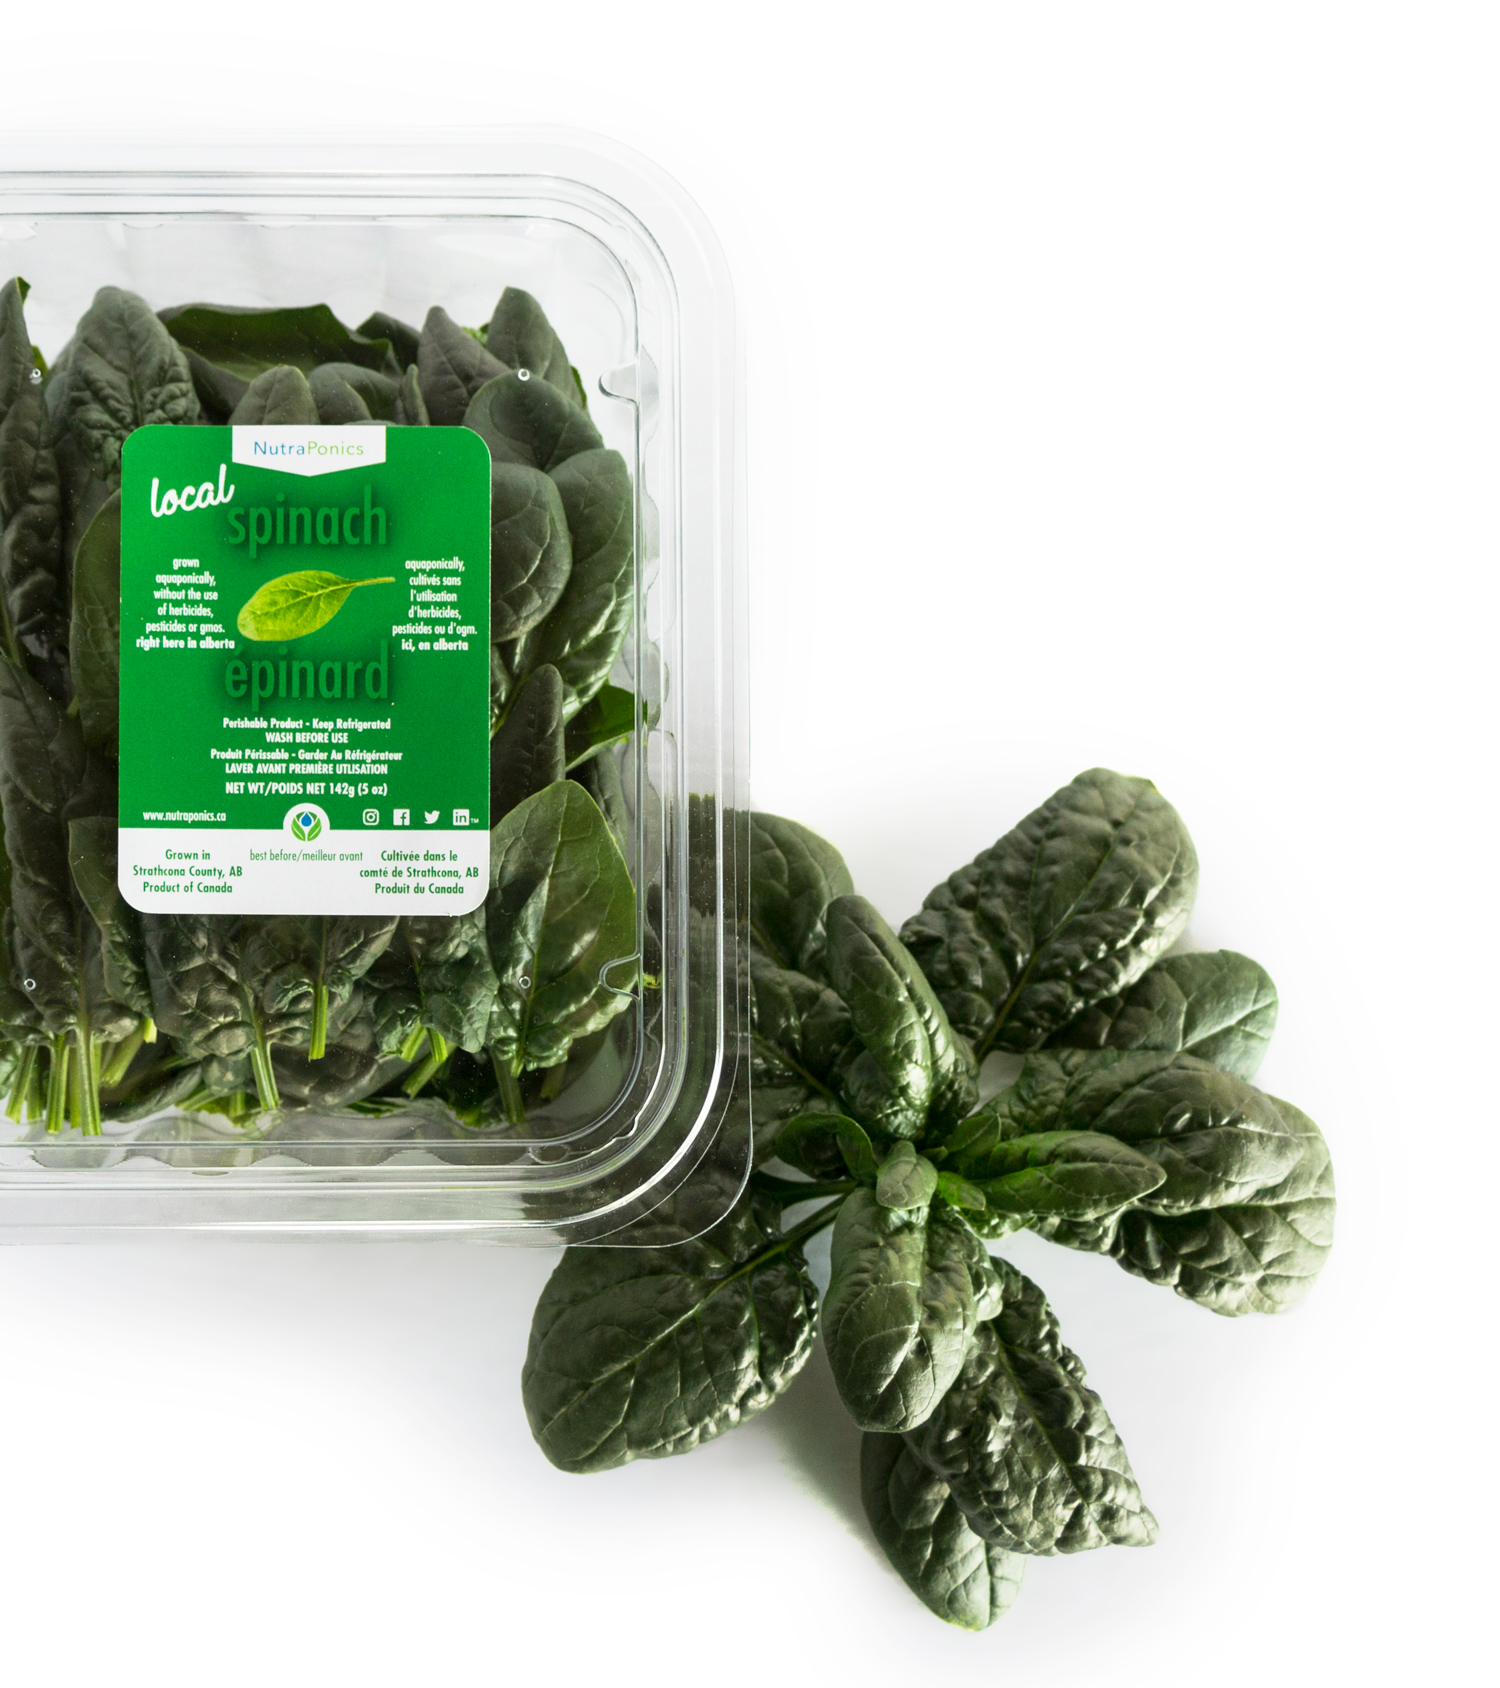 sPINACH - Spinach is an excellent source of iron as well as vitamins A and C. Not only is our deep green spinach nutritious, it is also extremely versatile. It can be used raw in a salad or cooked in any number of dishes, including soups, quiches, and soufflés, or on its own as a delicious side dish.